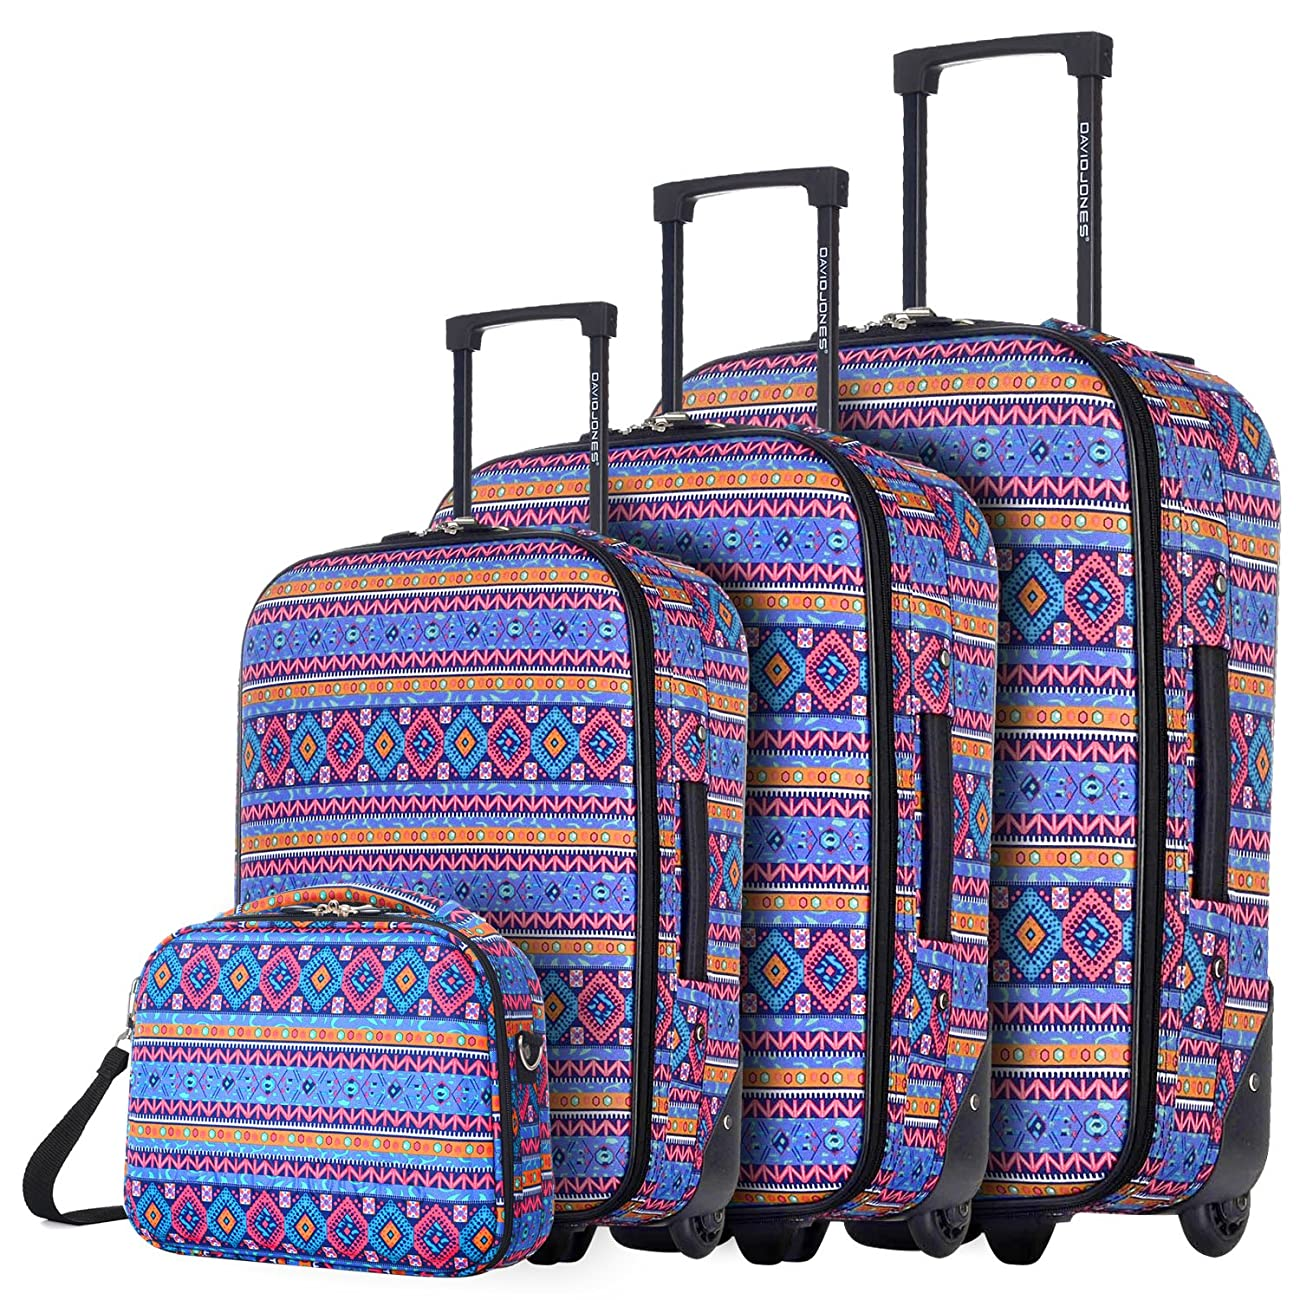 DAVIDJONES Vintage Print 4 Piece Luggage Set 0